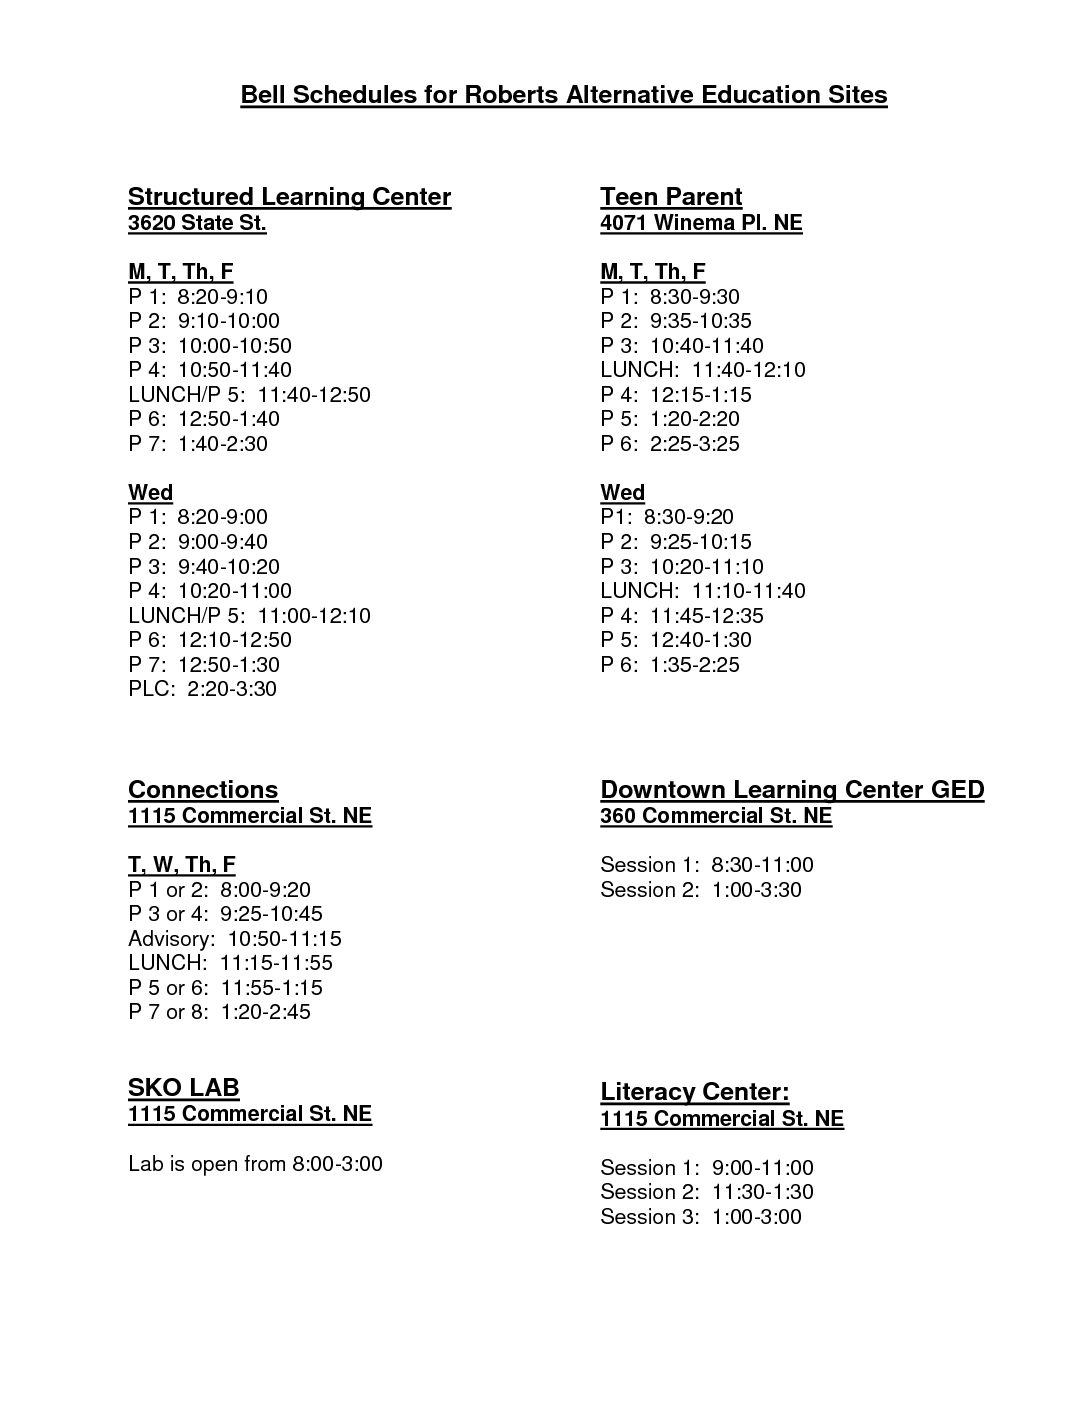 Bell Schedules - Roberts High School